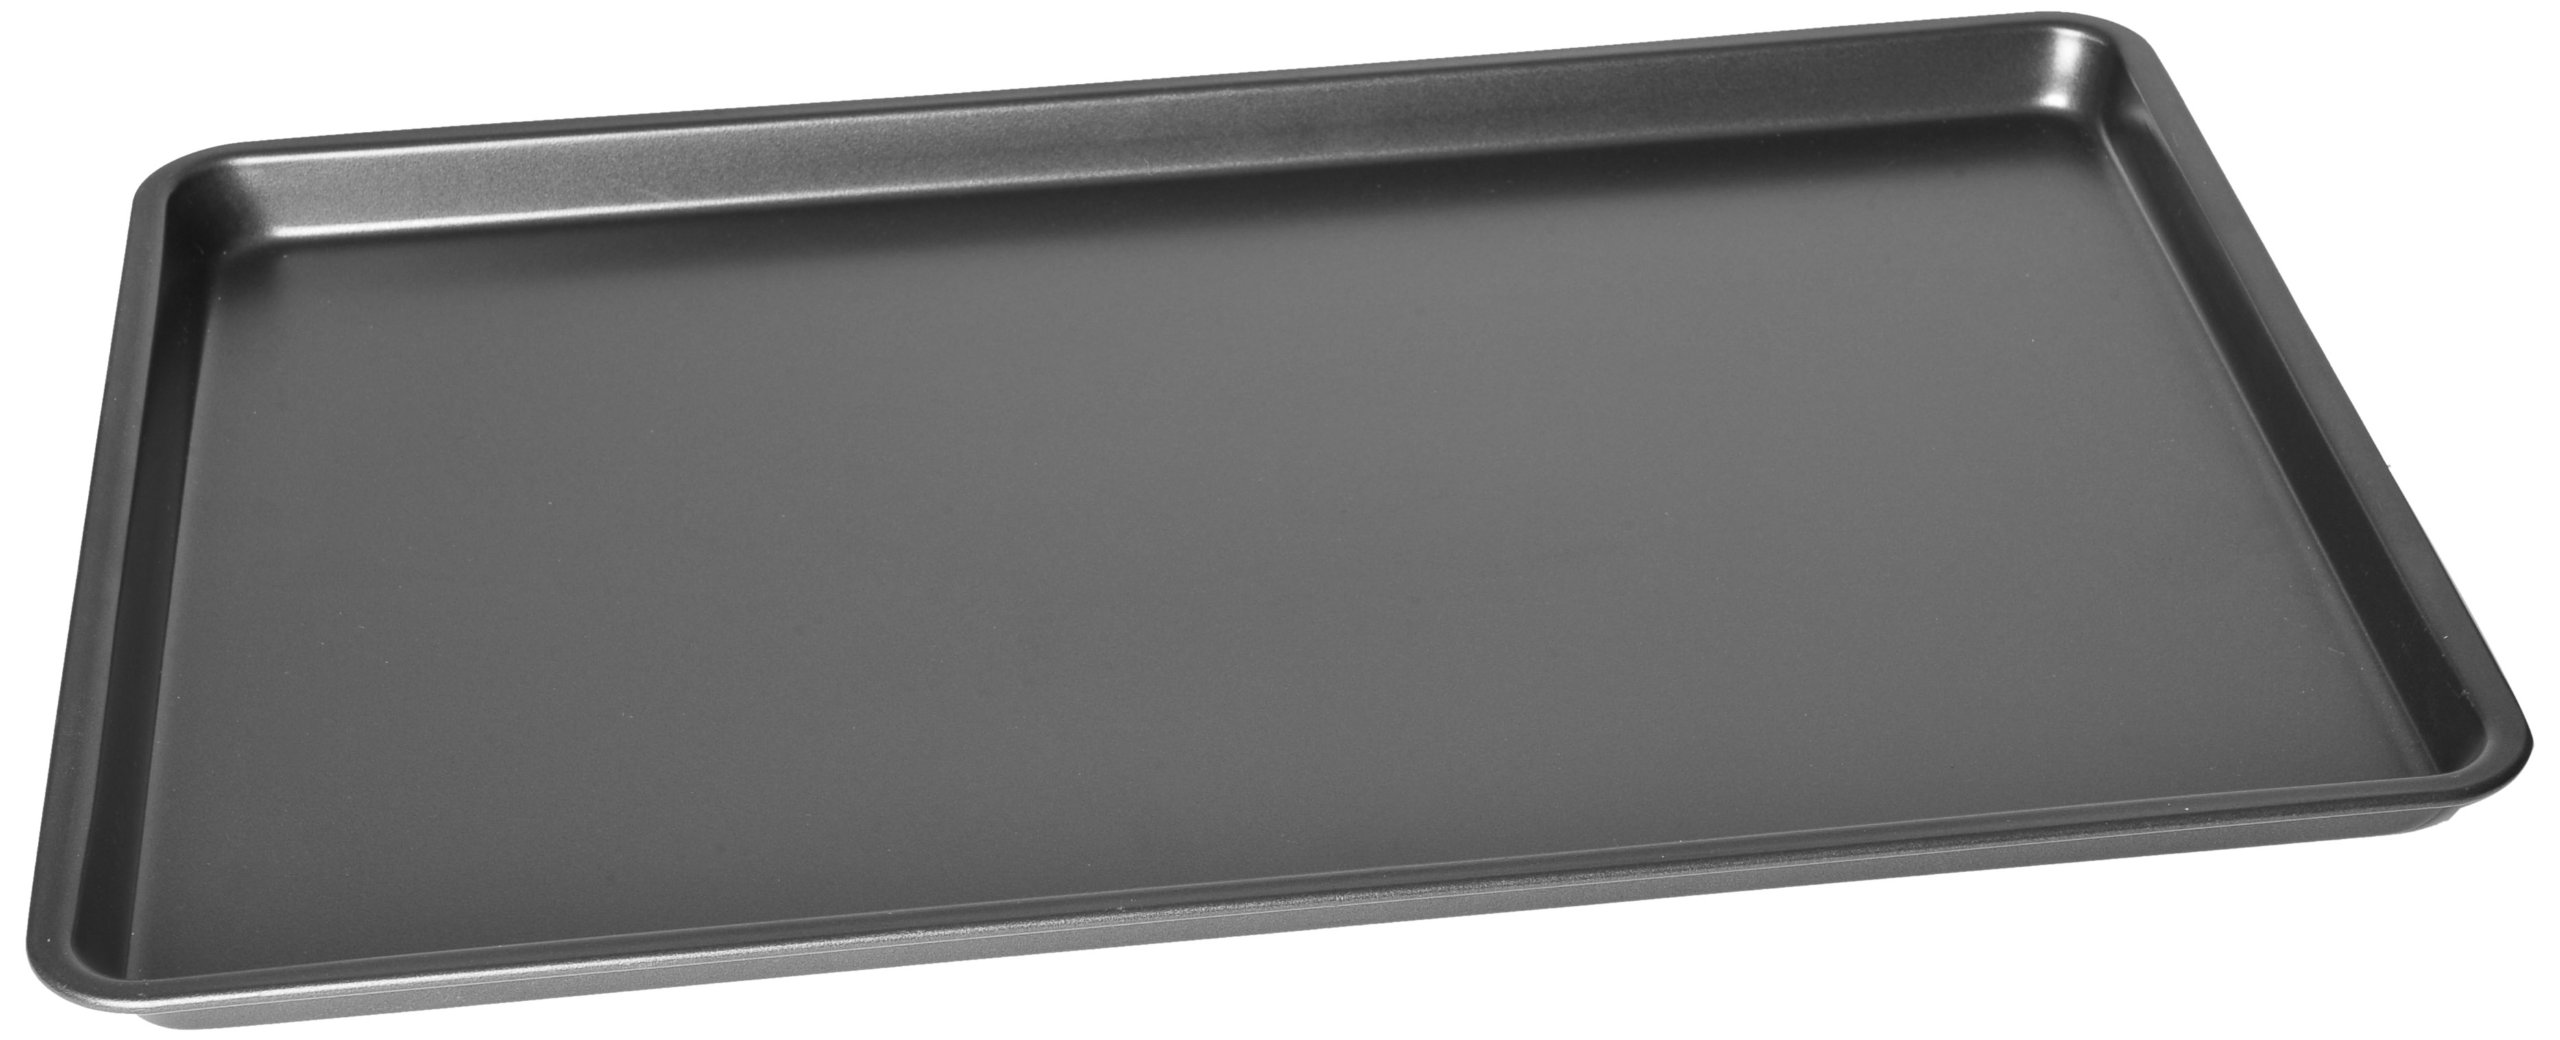 Chloe's Kitchen 201-124 Jelly Roll Pan, 11-1/4-Inch by 17-Inch, Non-Stick by MDC Housewares Inc.